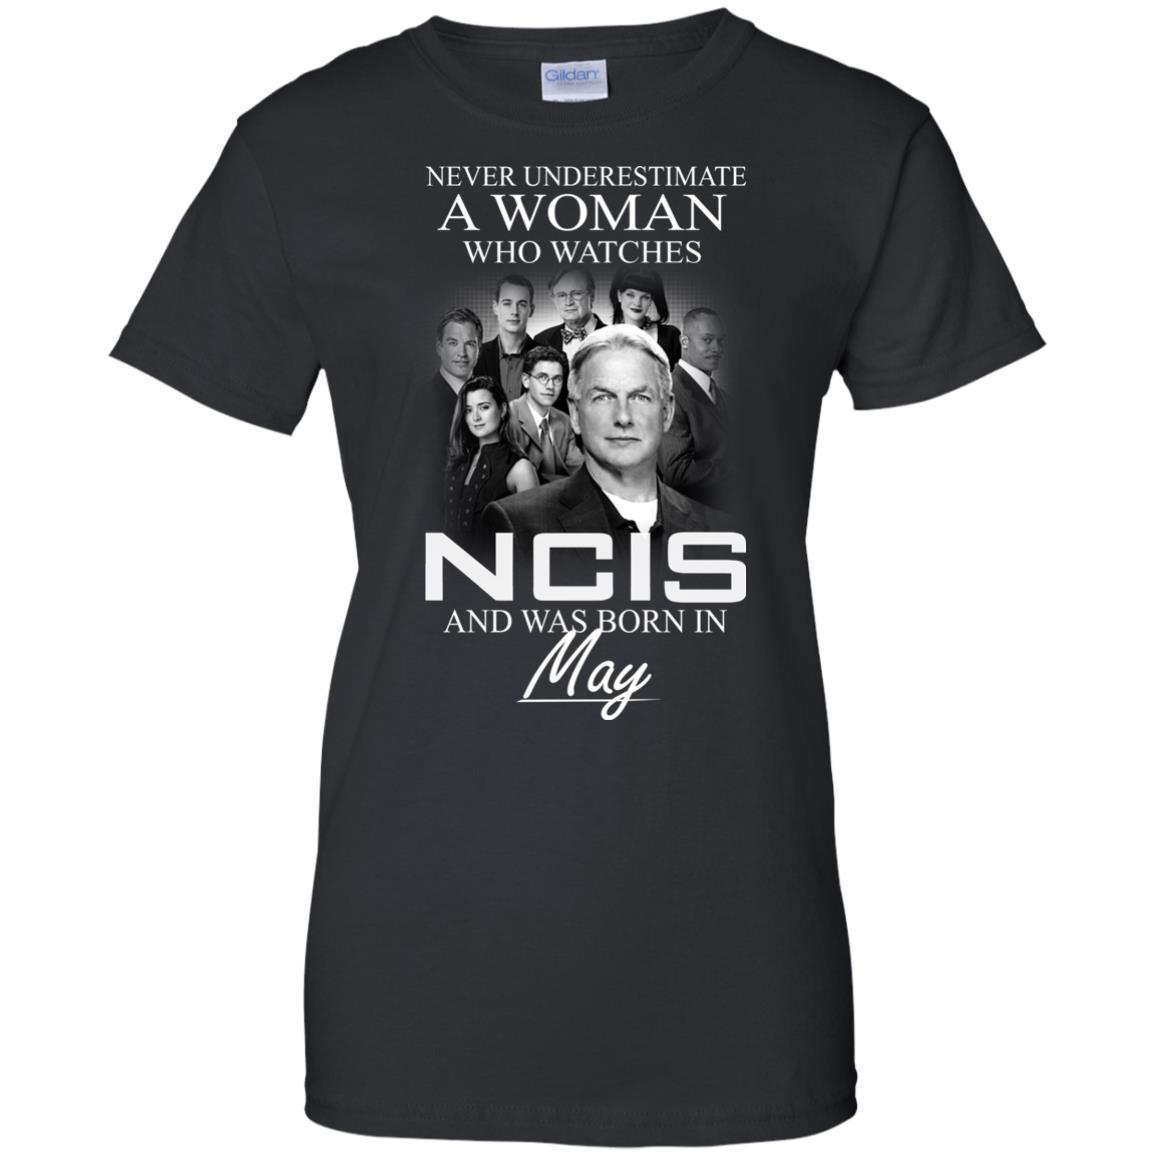 Never underestimate A Woman who watches NCIS and was born in May shirt - image 1192